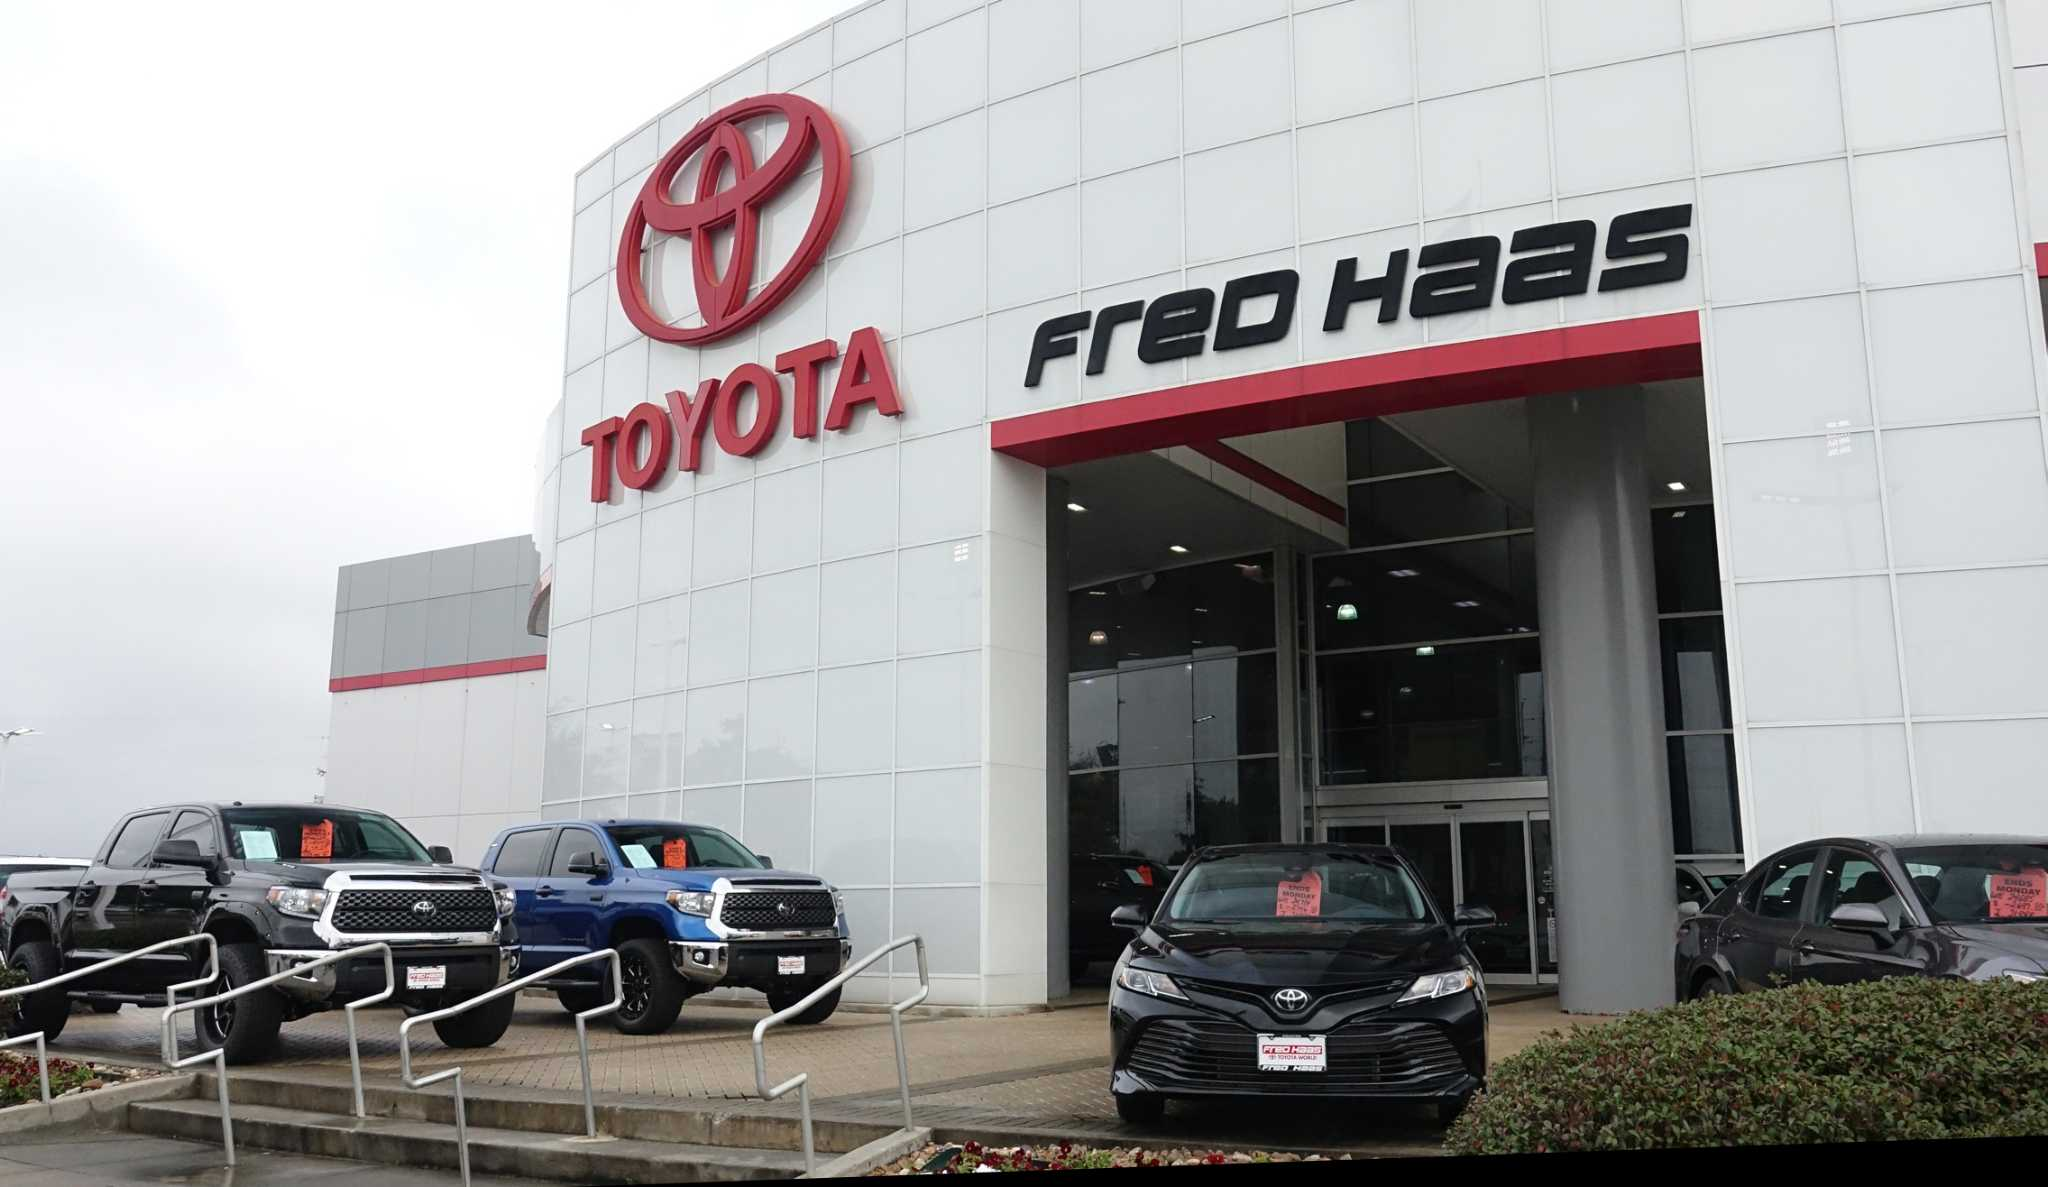 Dealership spotlight: Customizing helps power Fred Haas Toyota's performance streak